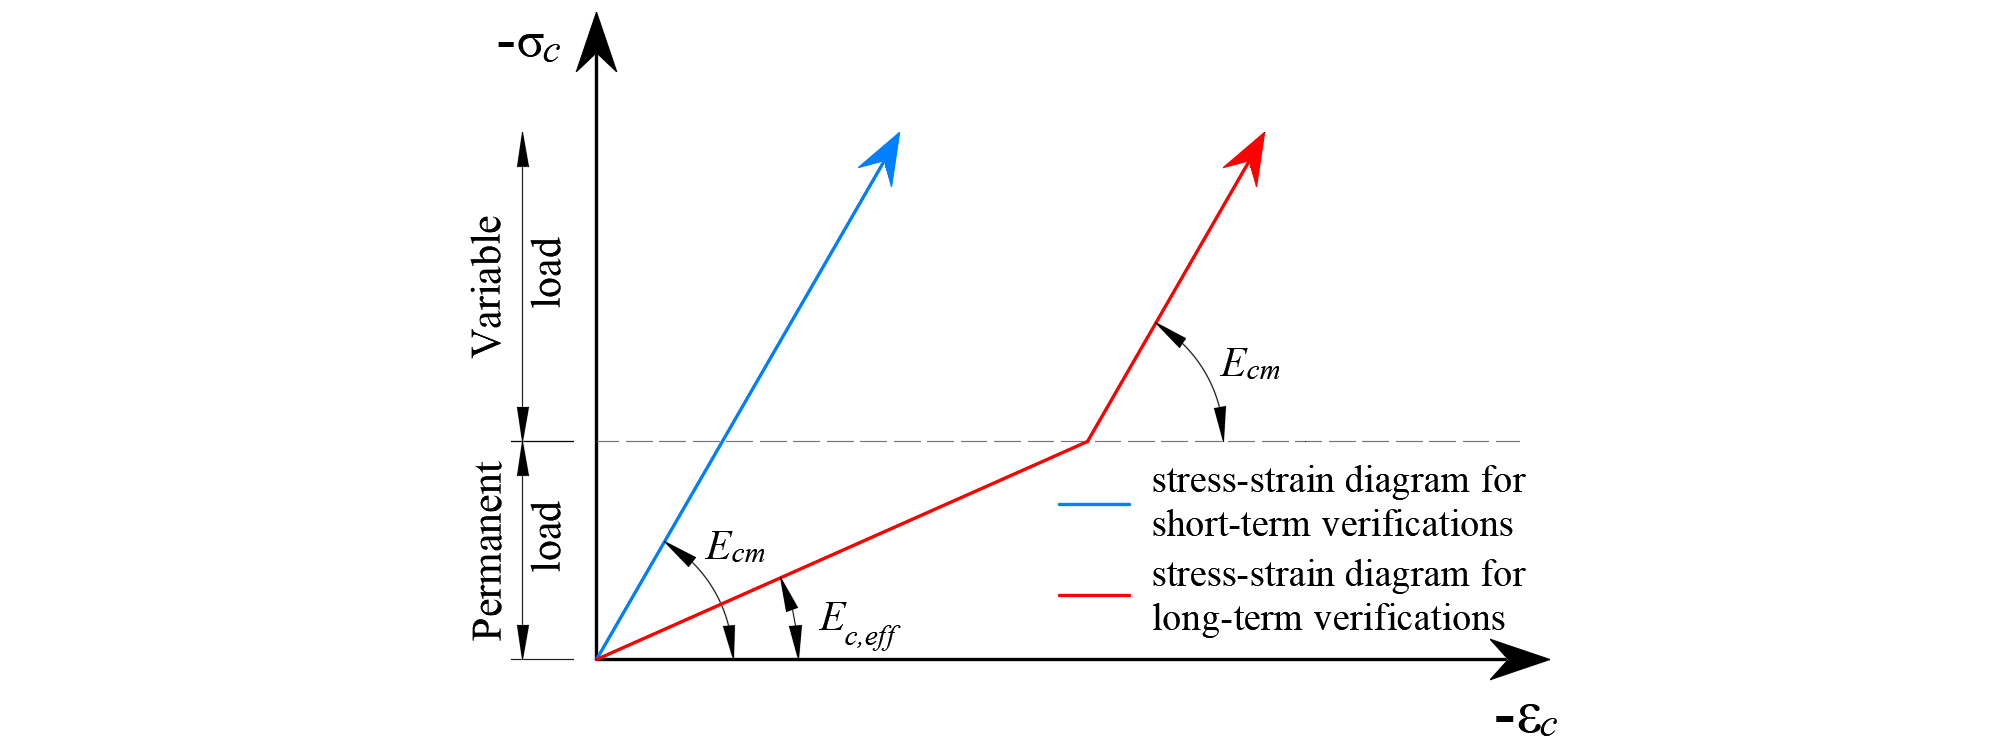 Fig. 28	Concrete stress-strain diagrams implemented for serviceability analysis: short- and long-term verifications.